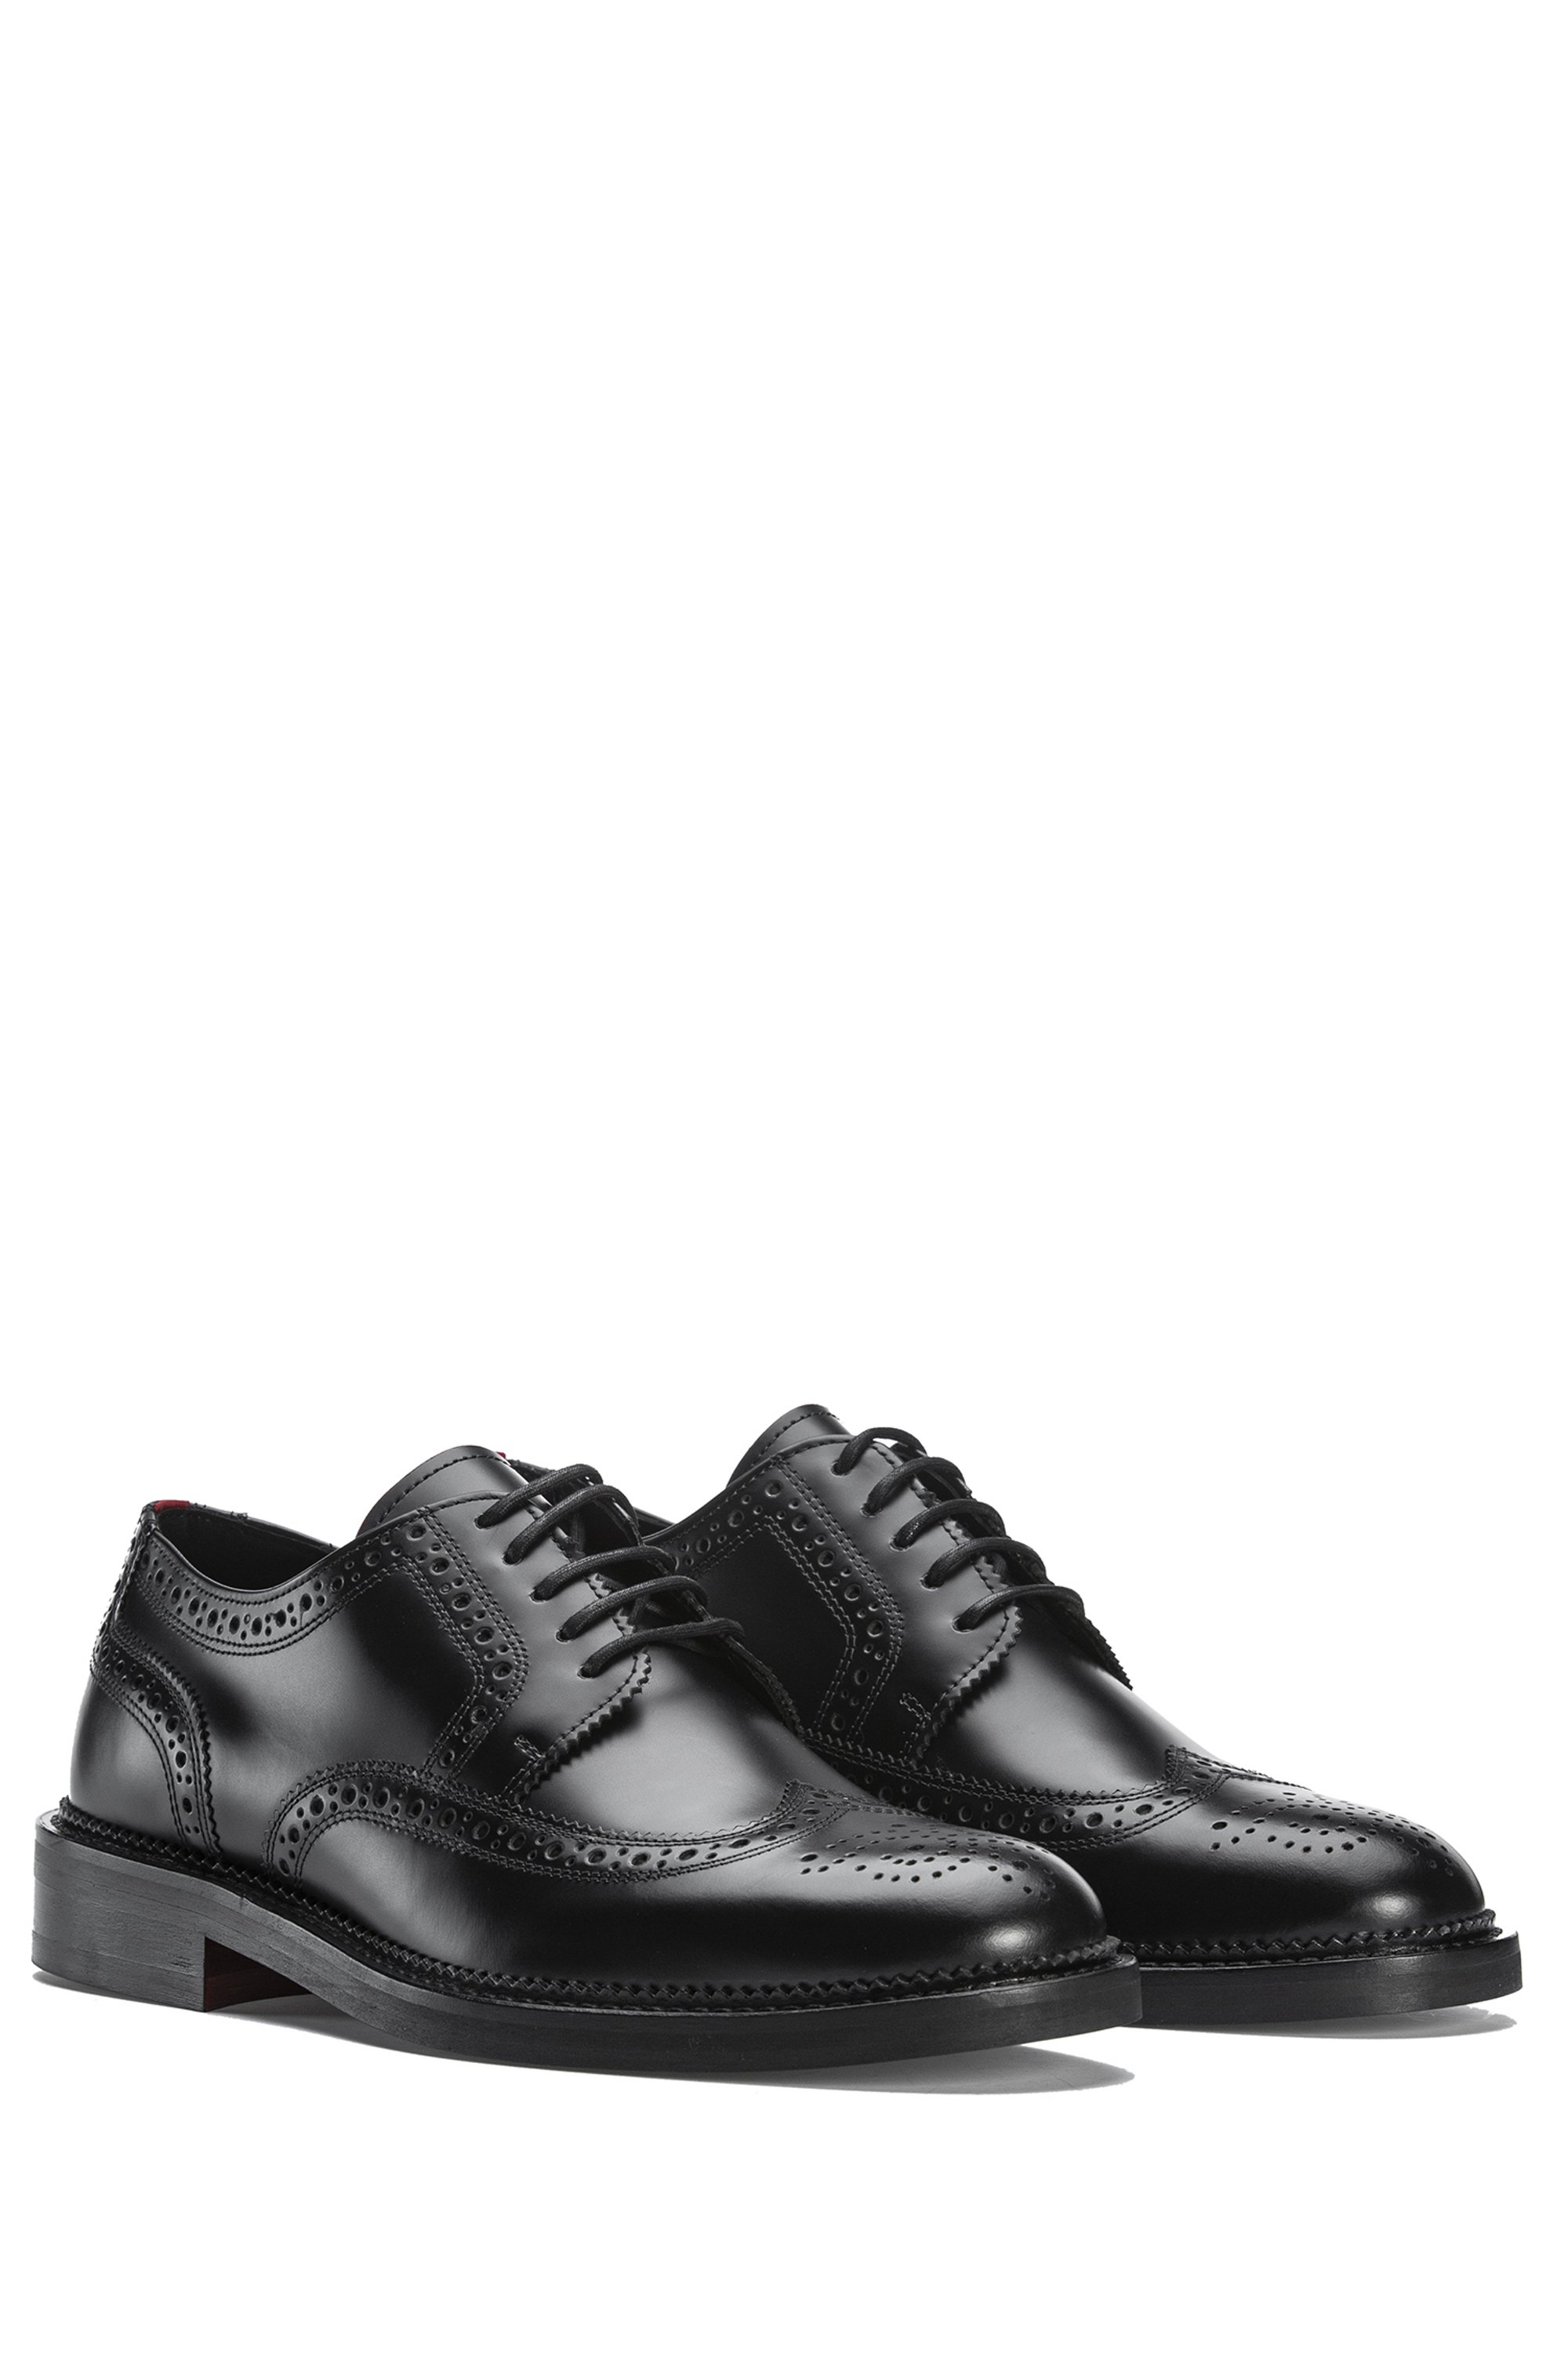 Derby shoes in brush-off leather with brogue details